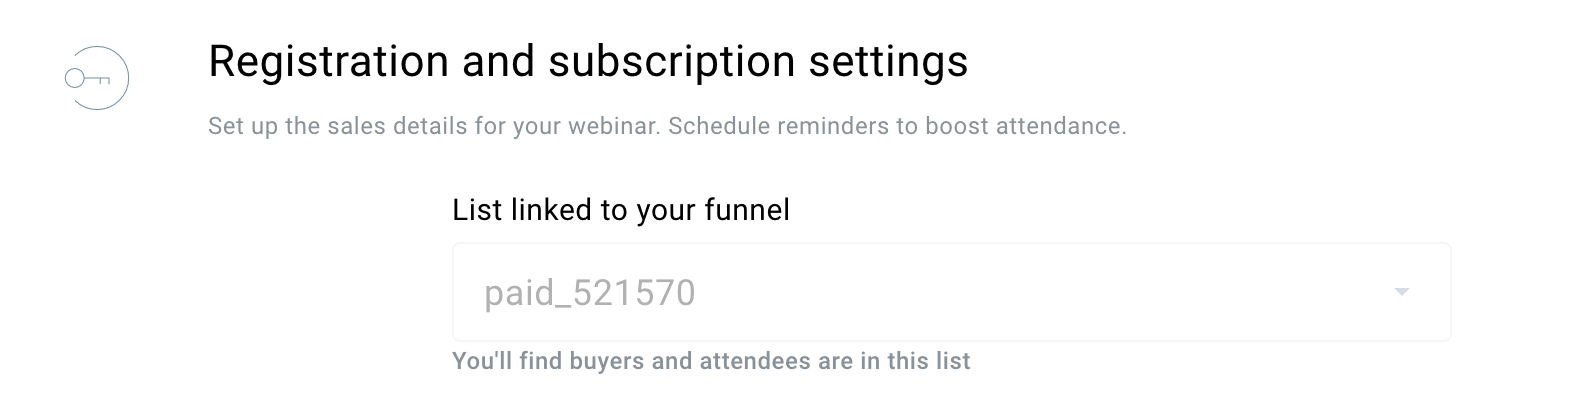 registration settings paid webinar funnel.